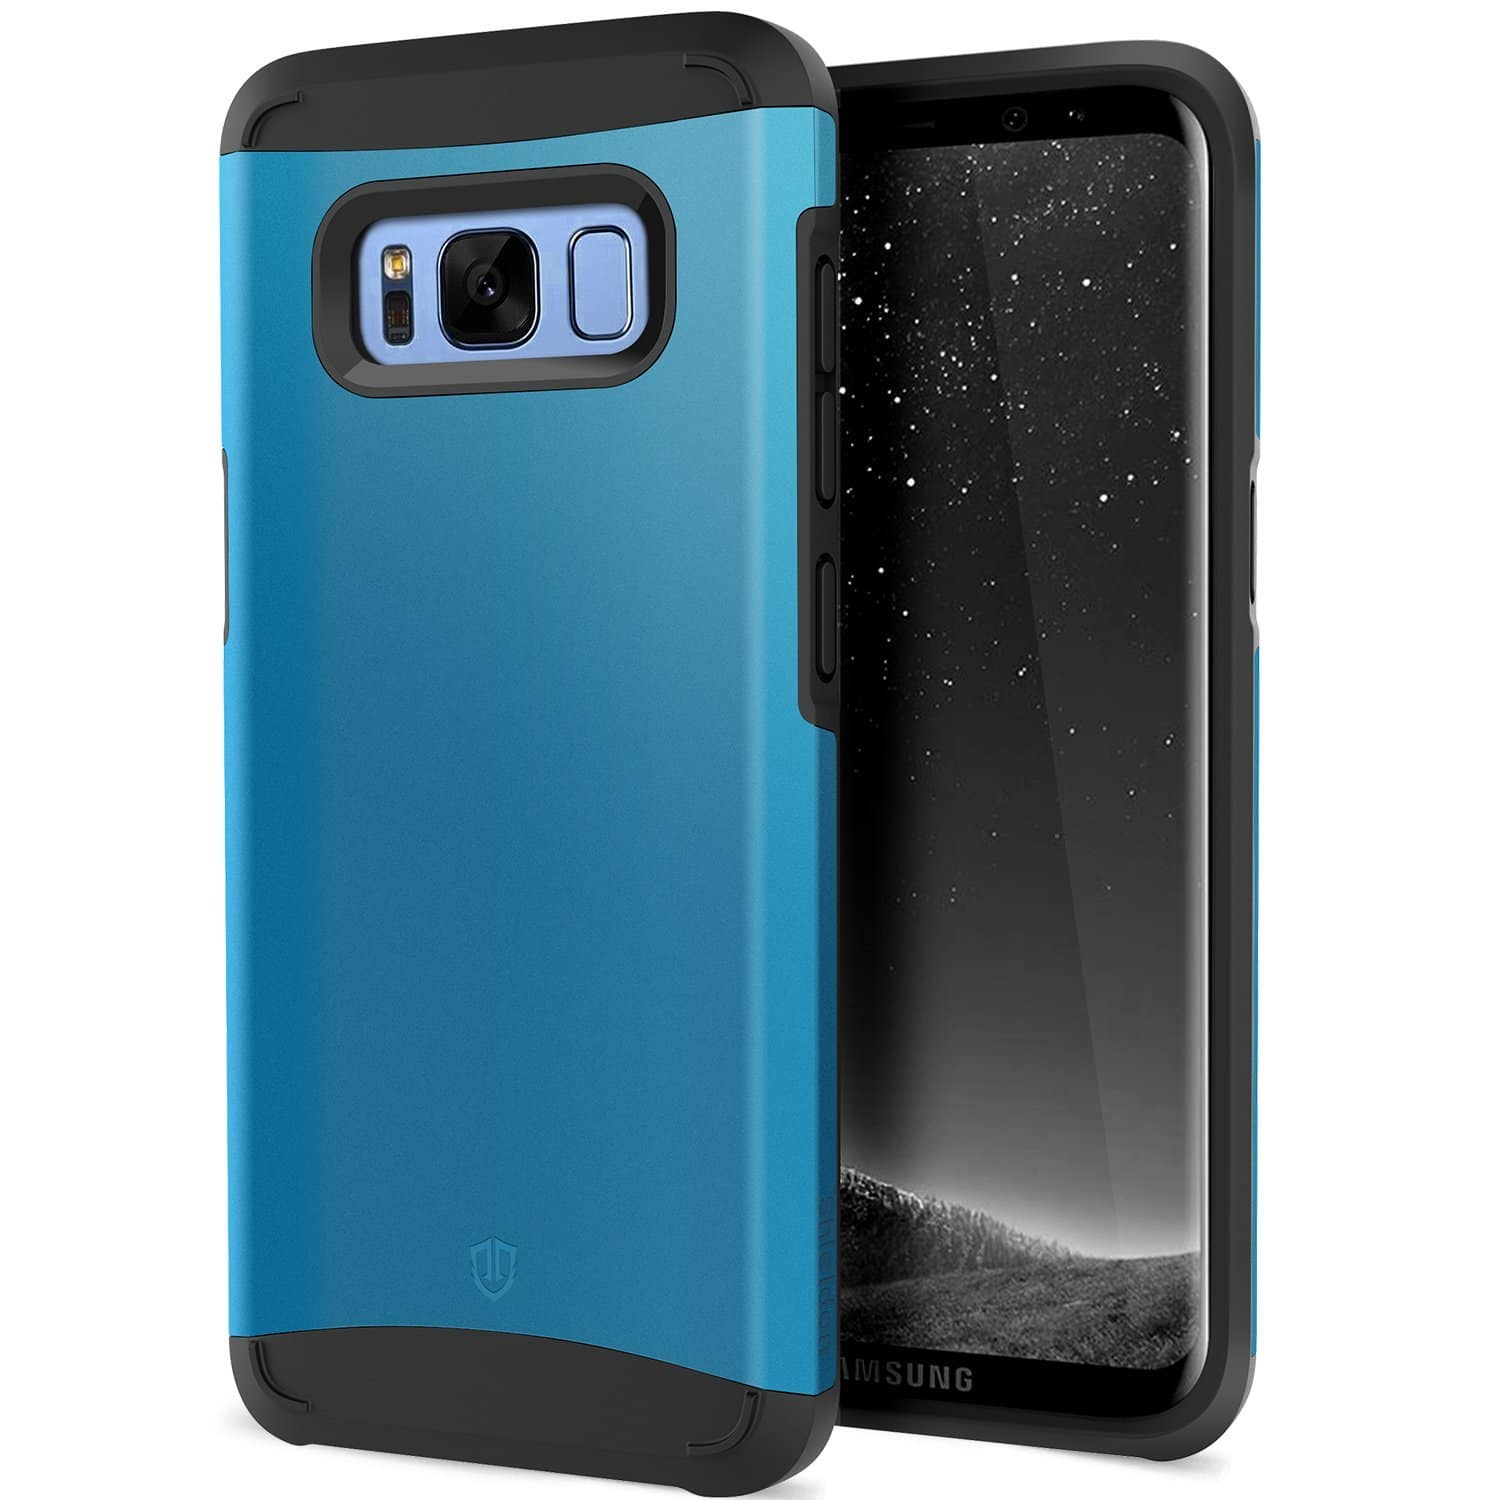 Shieldon iPhone 6s Plus/7/8/X & Samsung S8/Plus Various Cases, starting $2.99 AC/Shipping